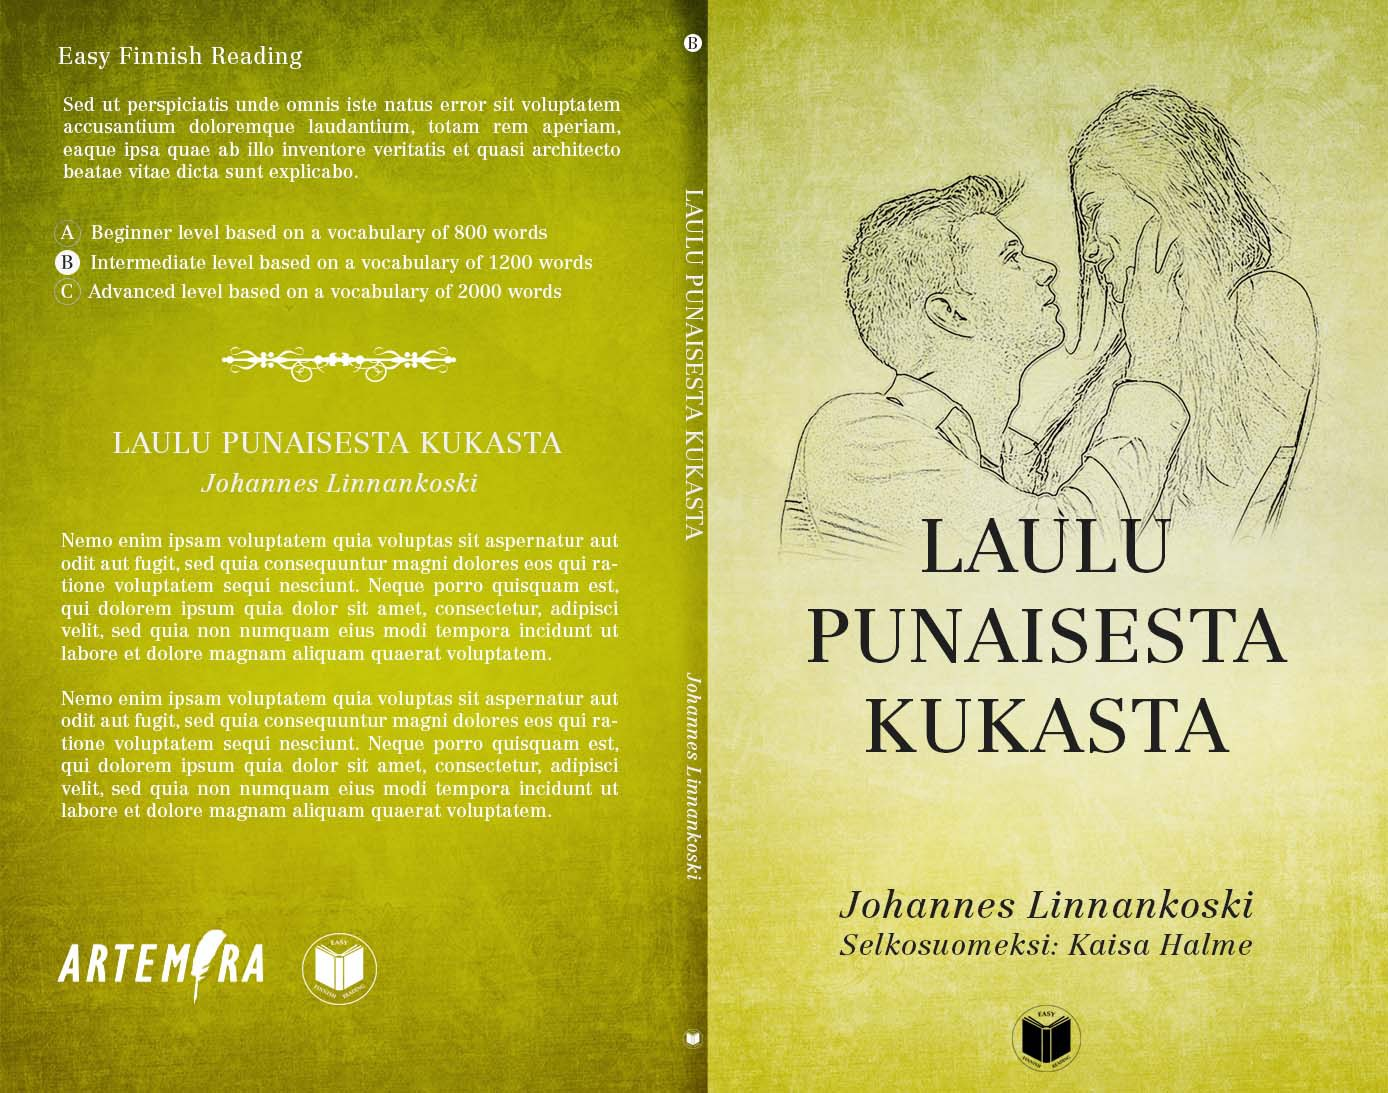 Book cover template for a series of easy reader language books